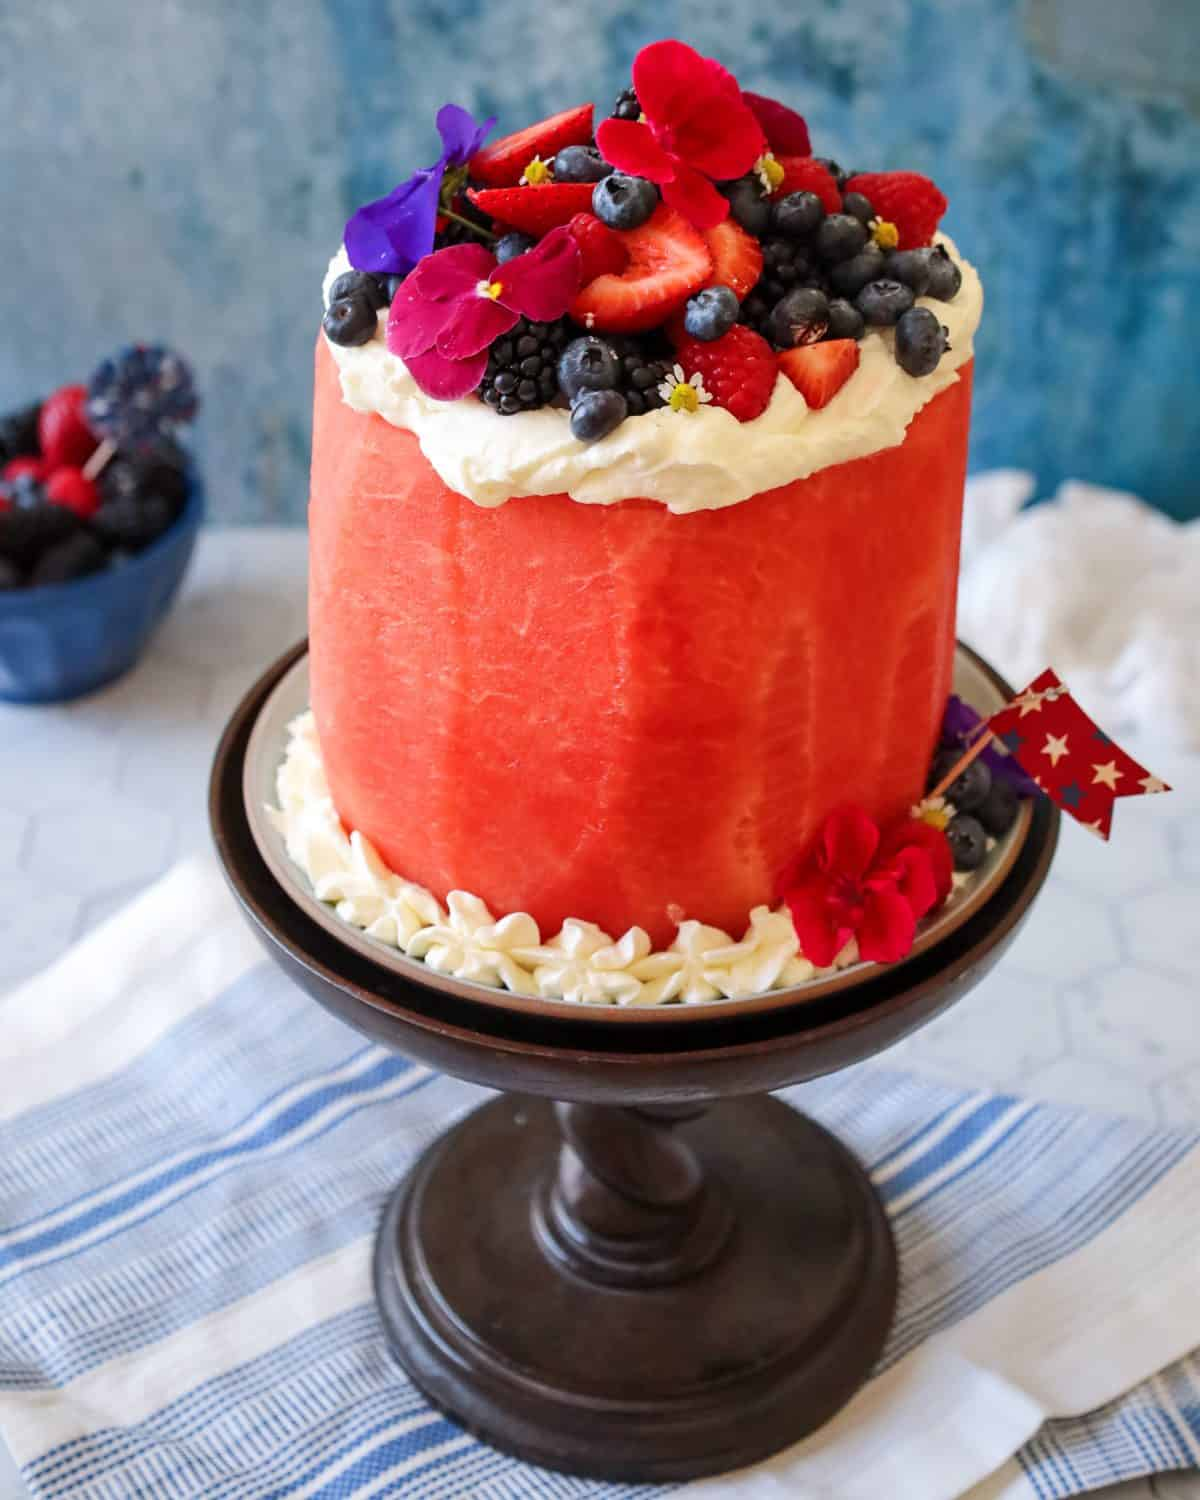 A peeled watermelon arranged o a cake platter and carved to look like a cake. the cake is iced with fresh whipped cream, strawberries, blueberries and blackberries for a fresh spin on a red, white and blue dessert cake!